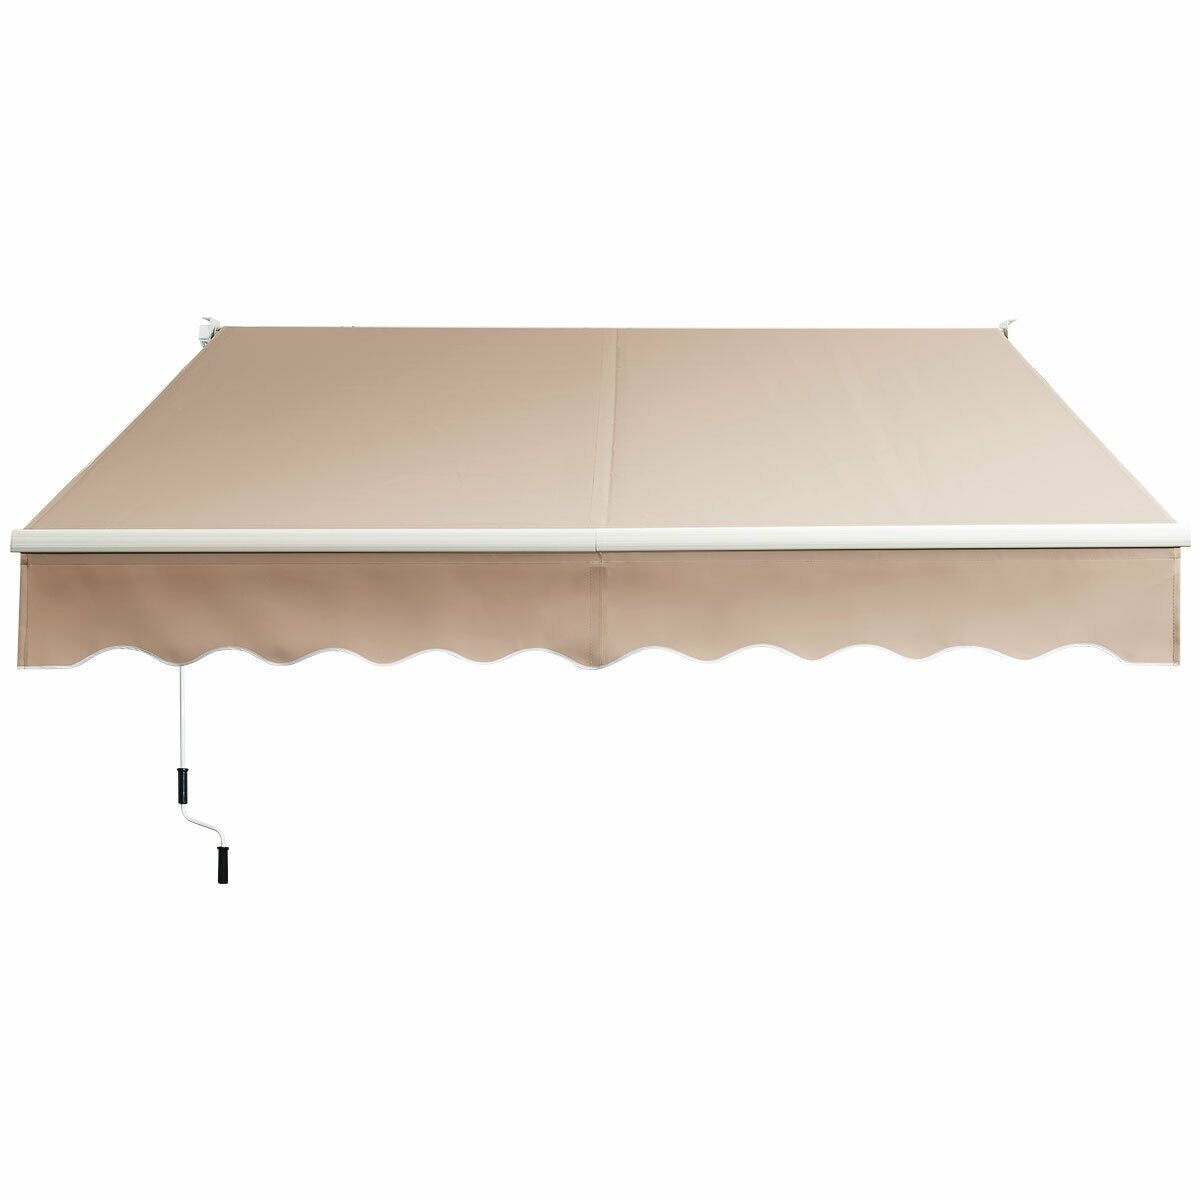 10'x 8' Retractable Awning Aluminum Patio Sun Shade Awning Cover w/Crank Handle  OP70368BE